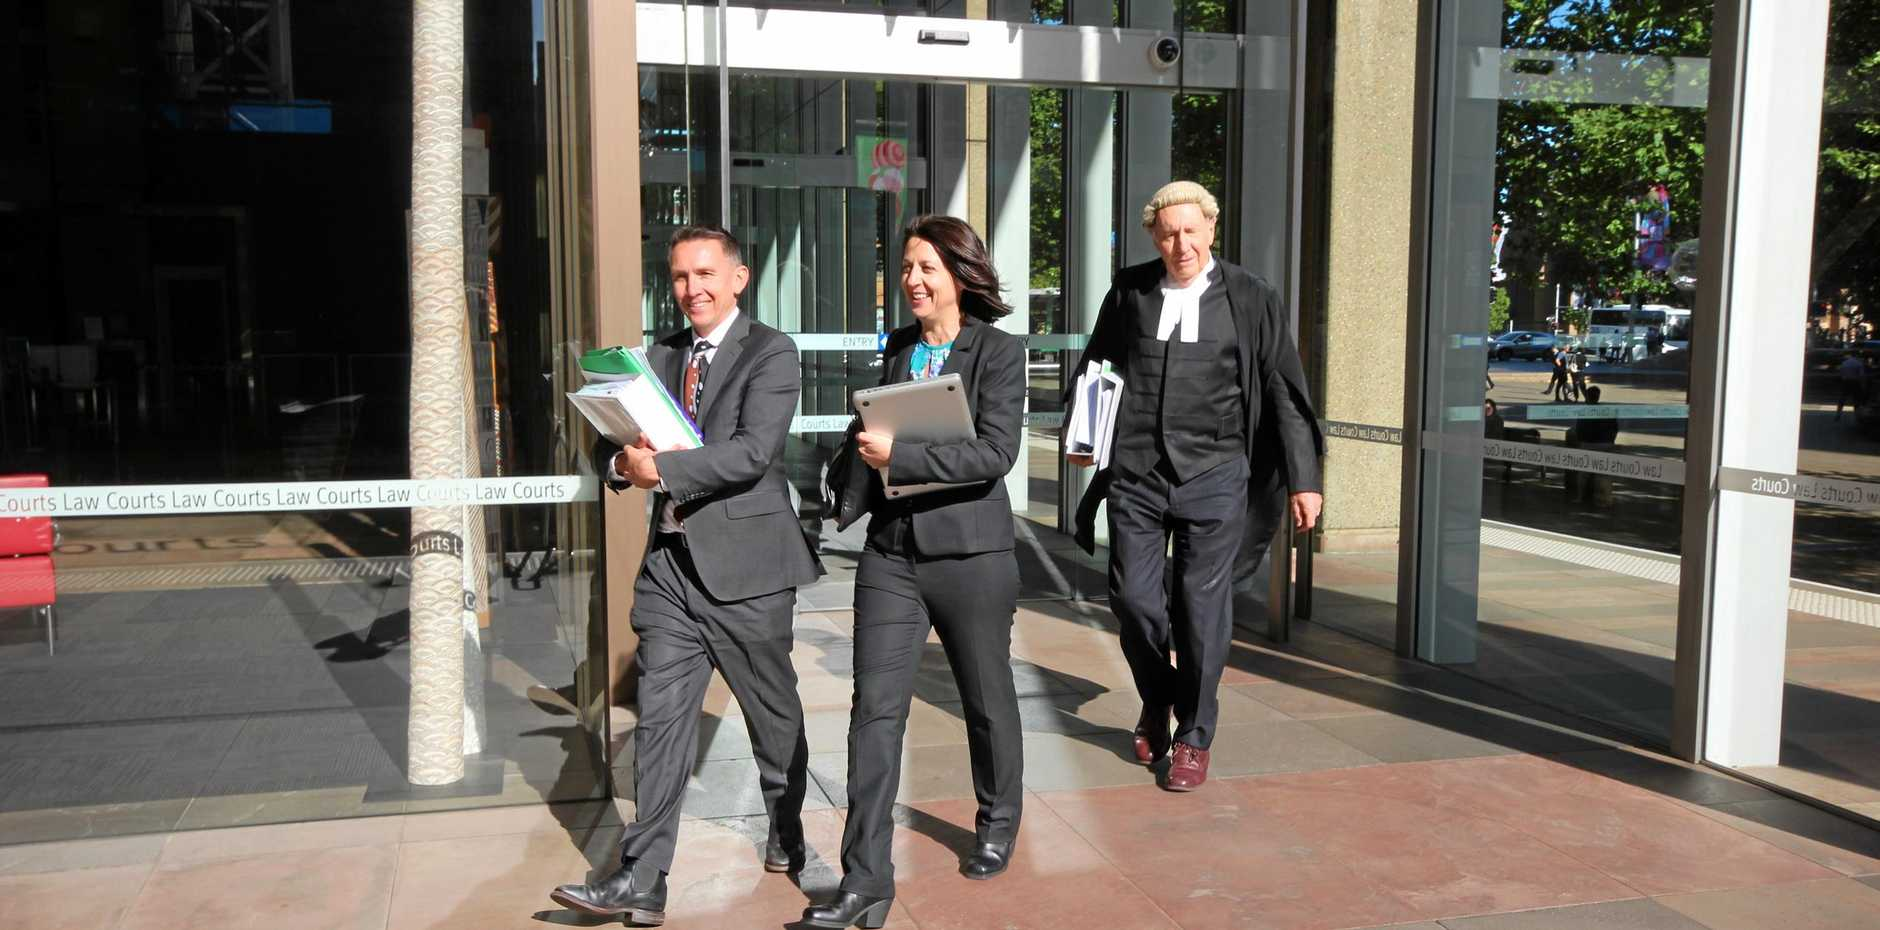 Esther Rockett (centre) leaves Sydney Supreme Court with solicitor Stewart O'Connell and barrister Tom Molomby after the final hearing in the defamation case brought against her by Universal Medicine leader Serge Benhayon.